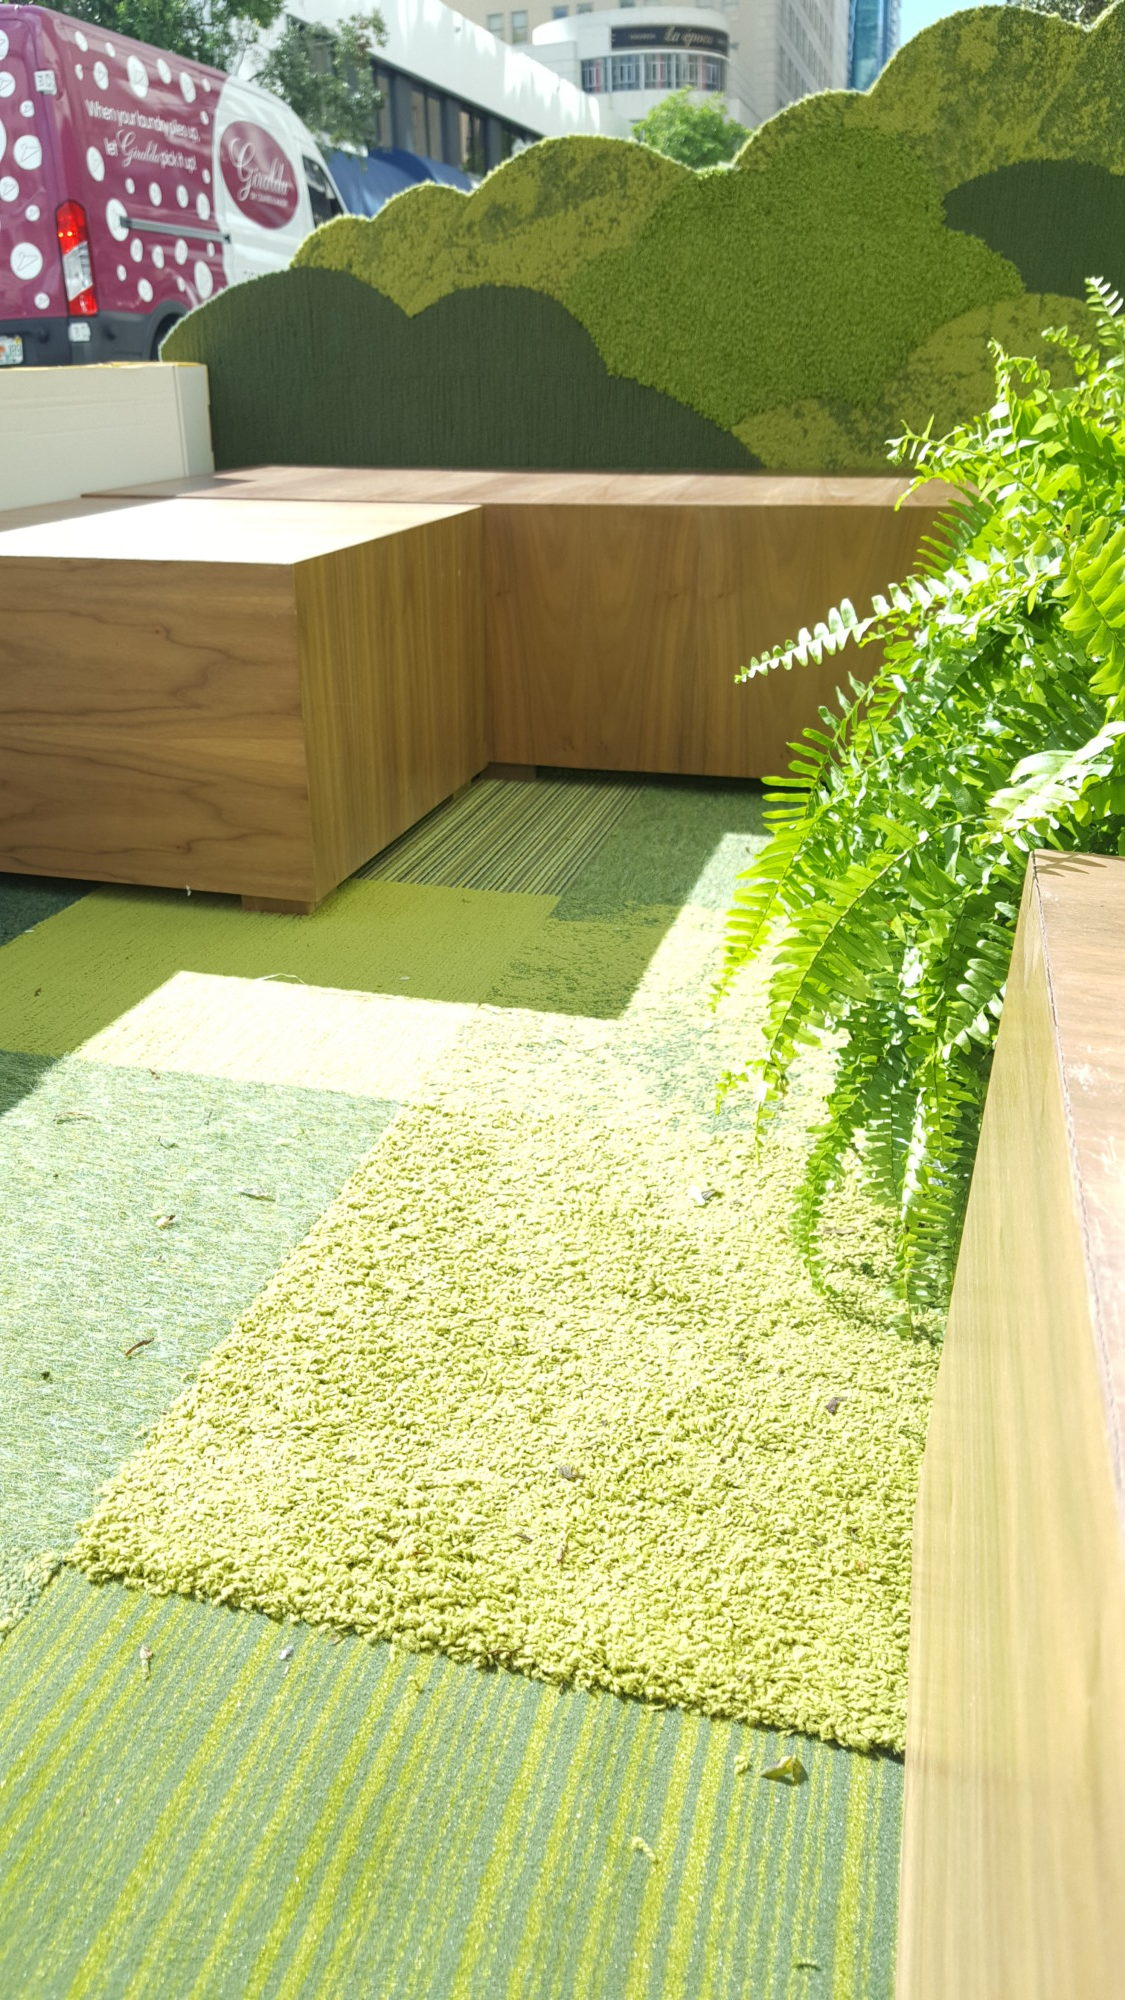 The carpeting company, FLOR, designed this parklet in Downtown Miami for PARK(ing) Day. Courtesy of Isabella Bru)